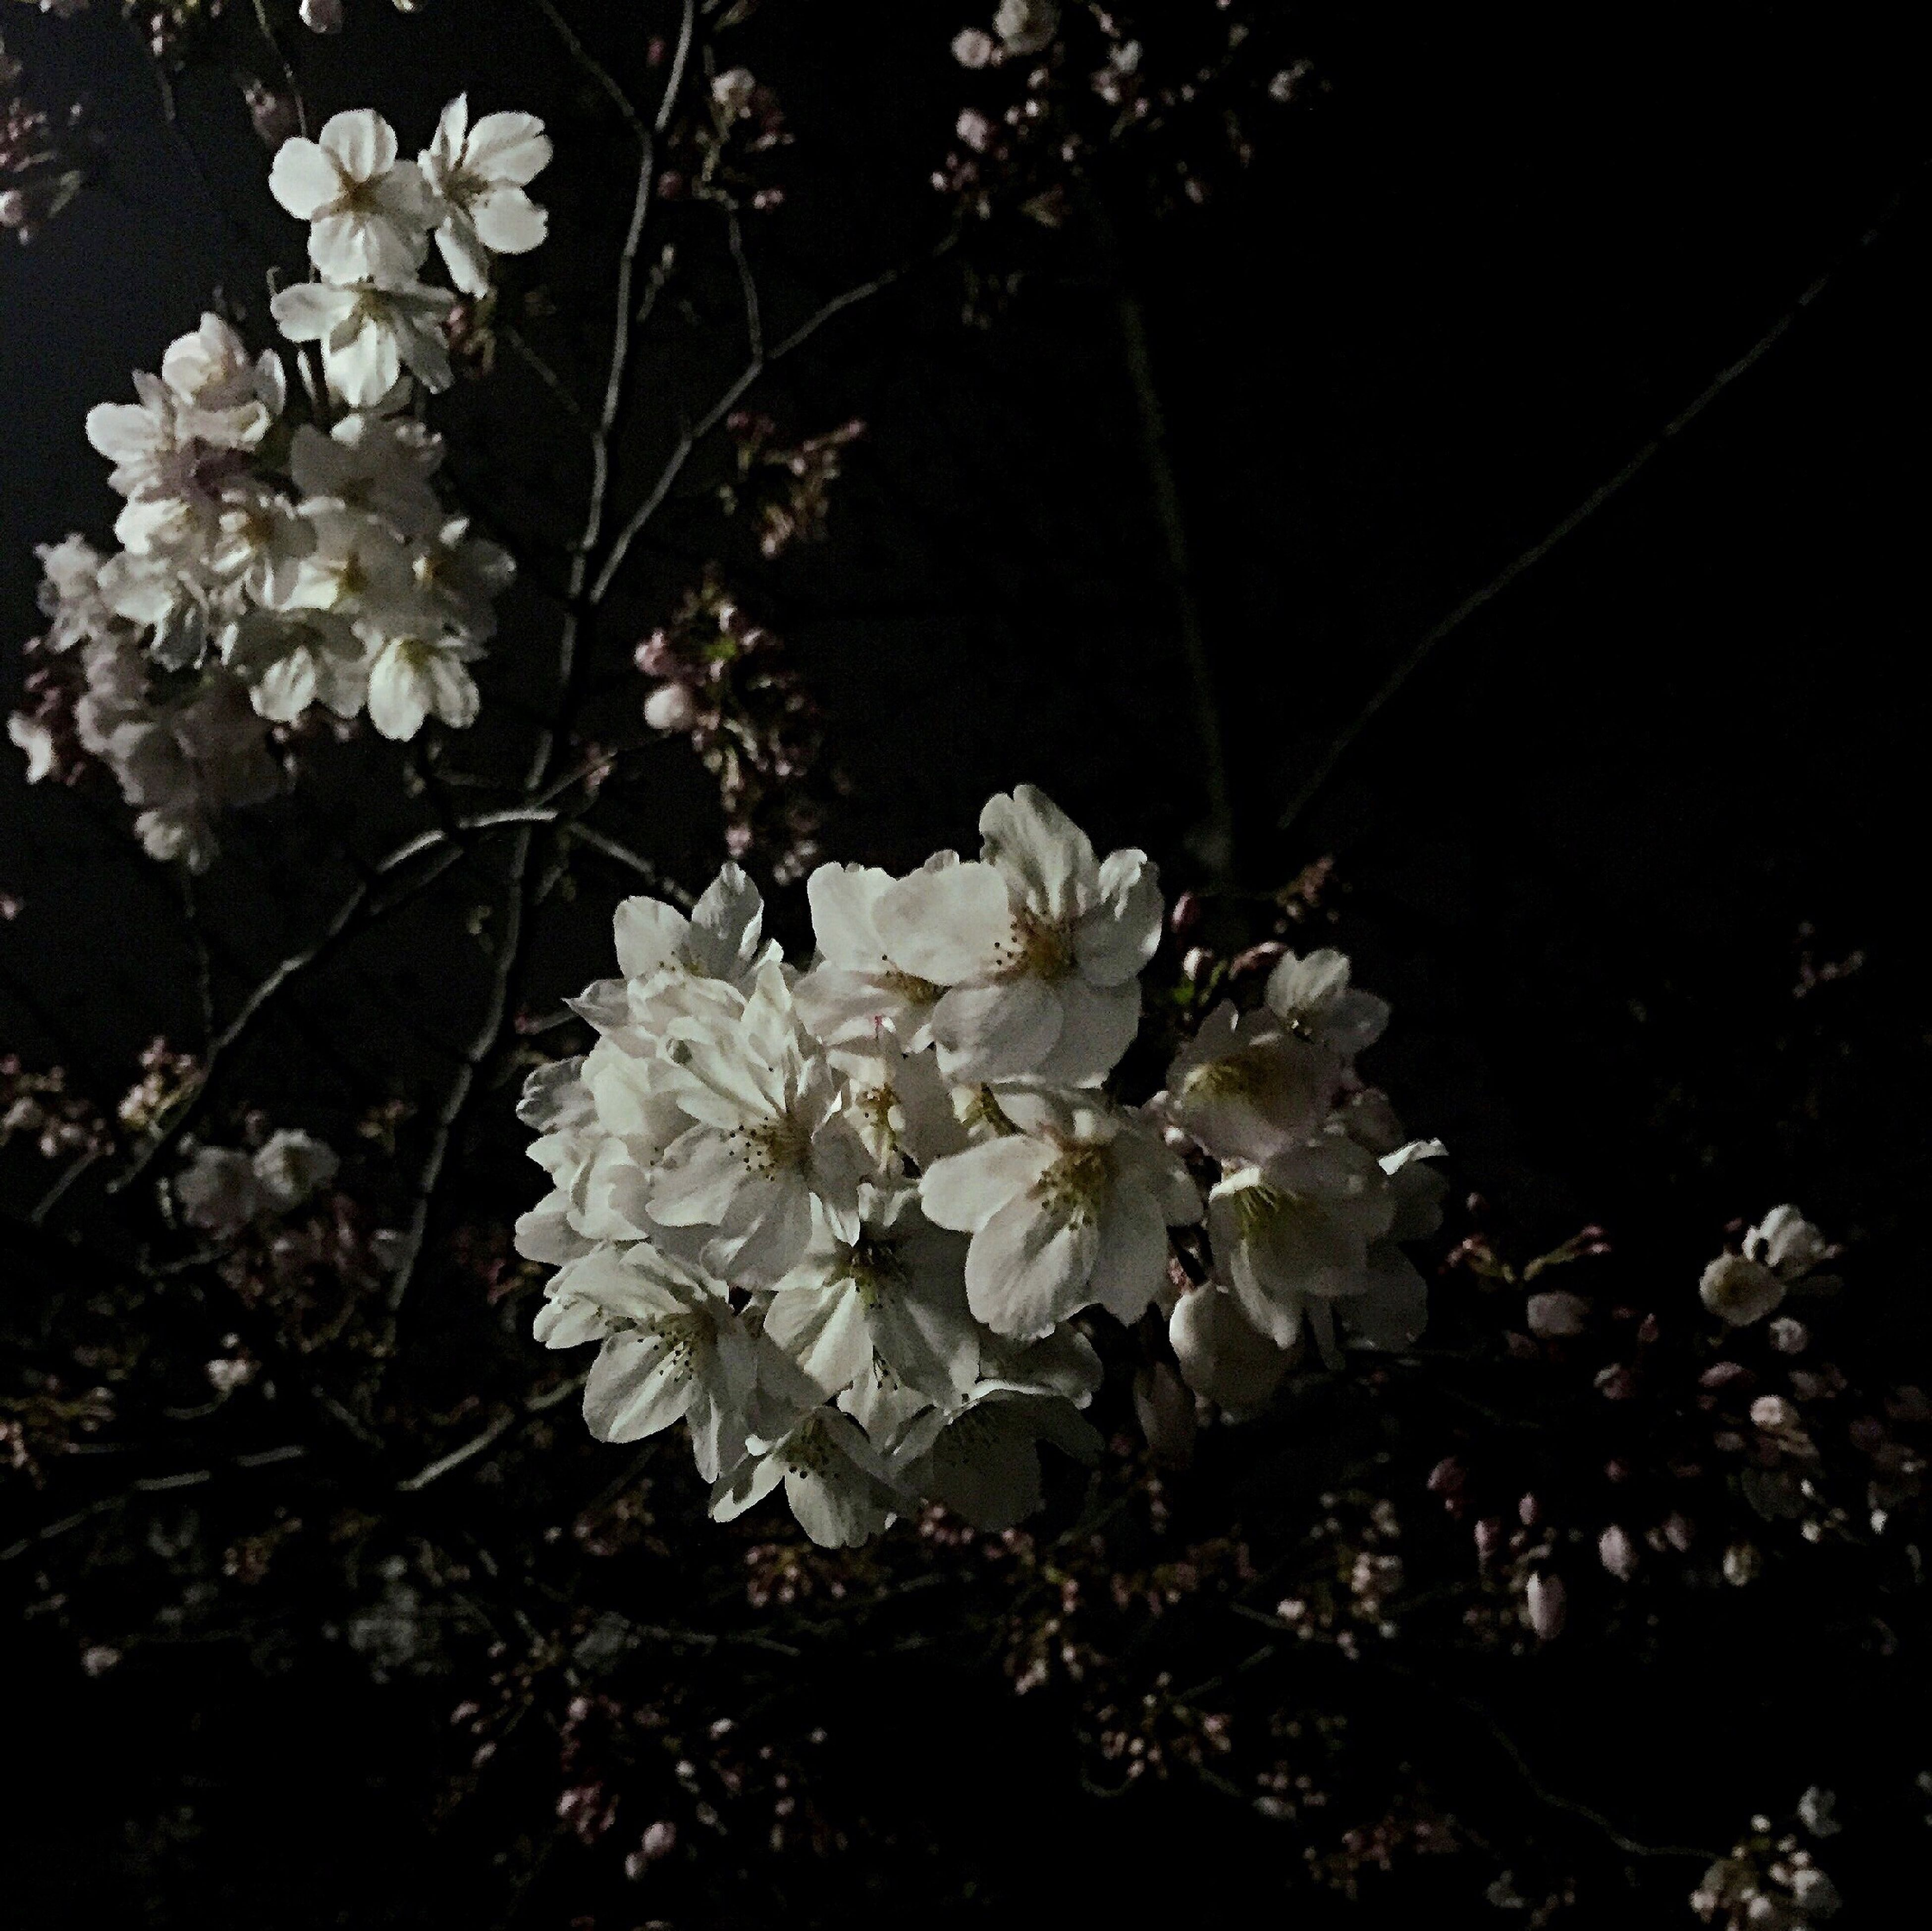 flower, freshness, growth, fragility, white color, petal, beauty in nature, branch, blossom, nature, tree, blooming, flower head, in bloom, plant, springtime, cherry blossom, close-up, twig, botany